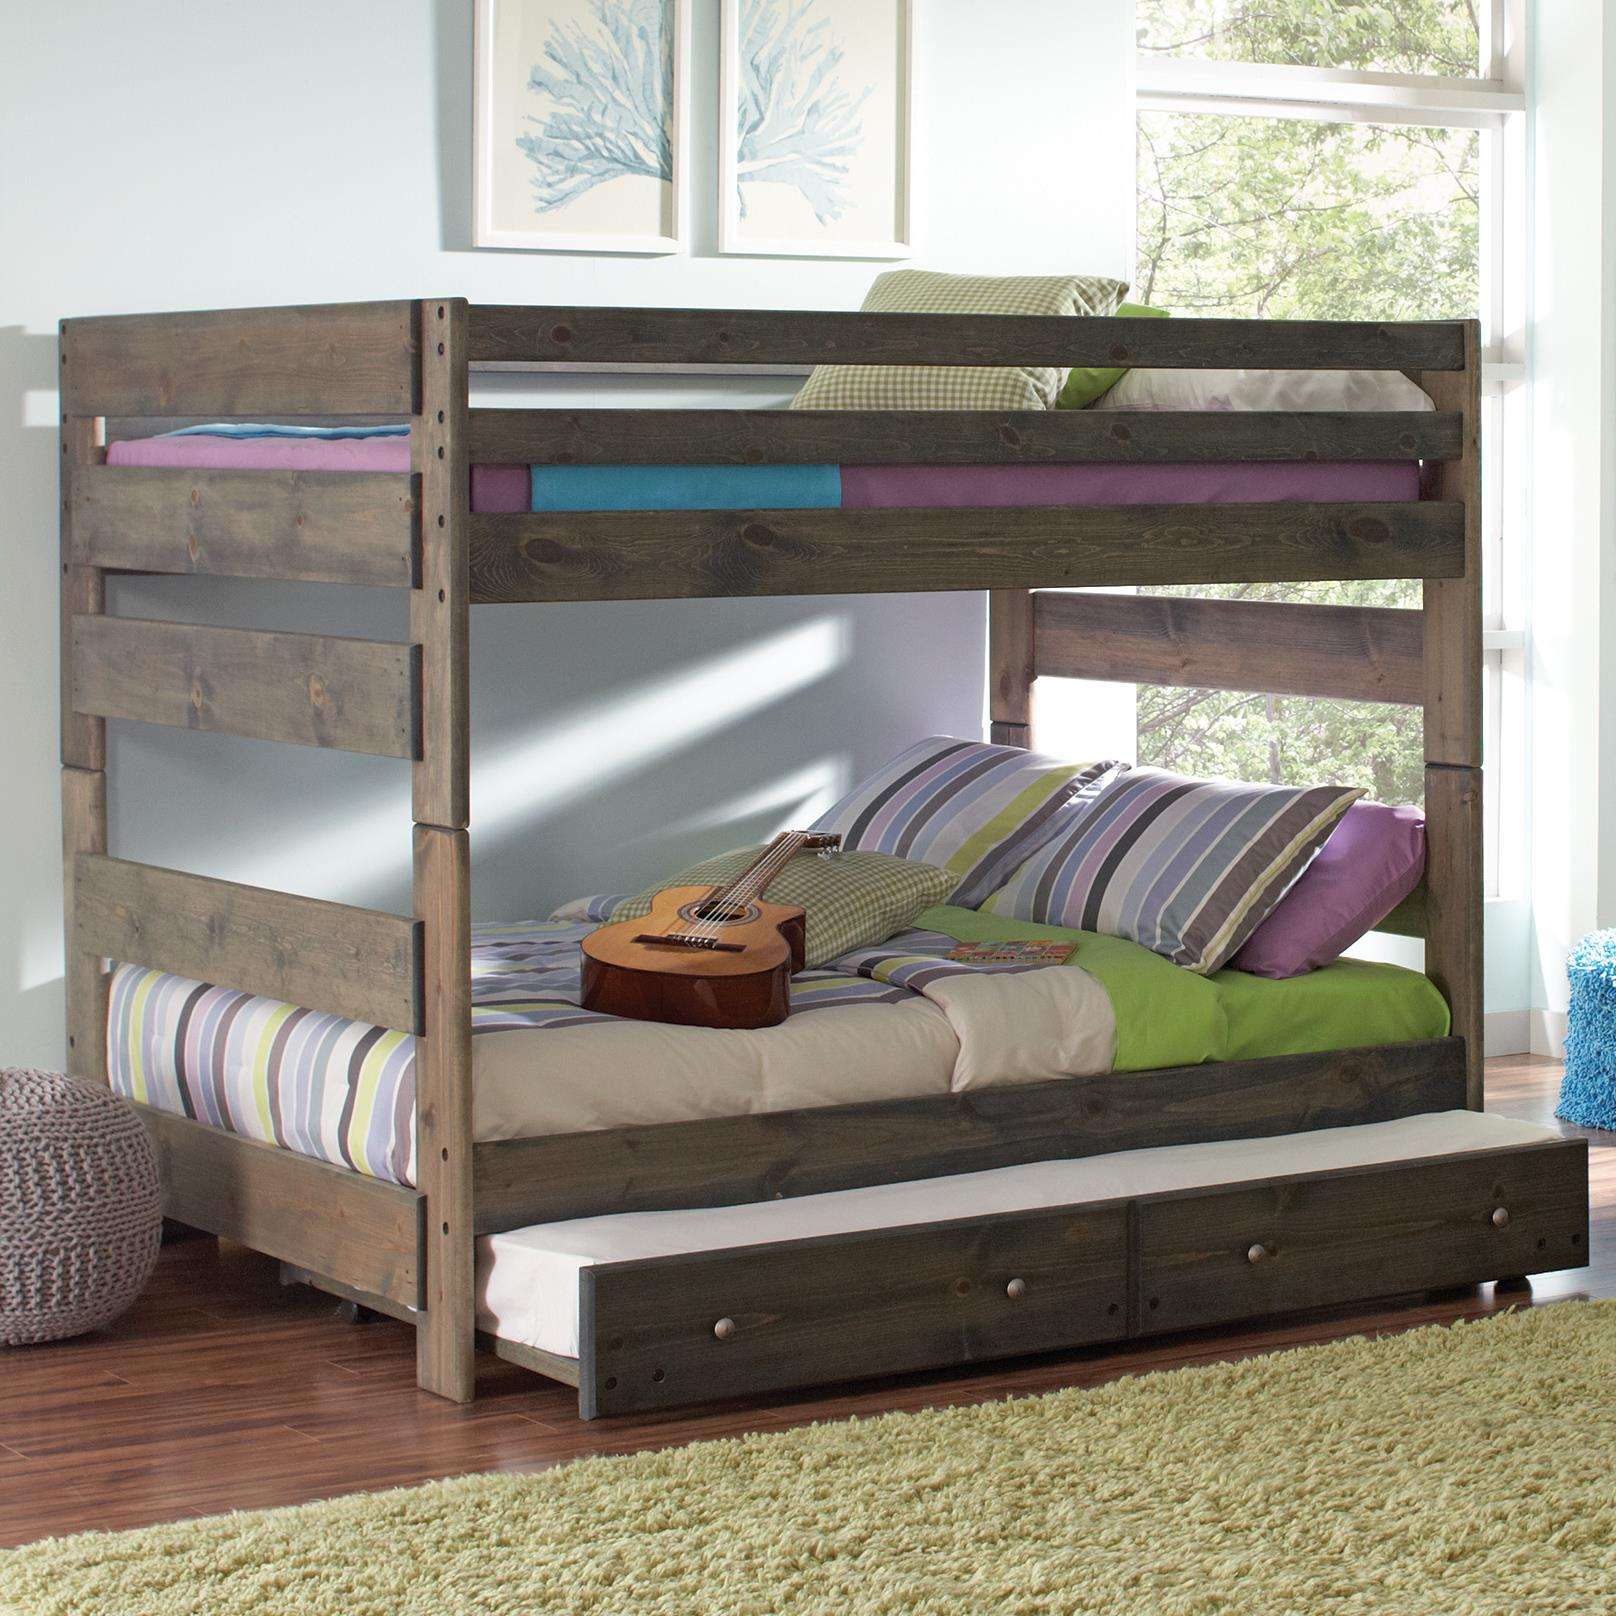 Childrens Beds With Pull Out Bed Underneath Wrangle Hill Full Over Full Bunk Bed With Pull Out Trundle By Coaster At Dunk Bright Furniture